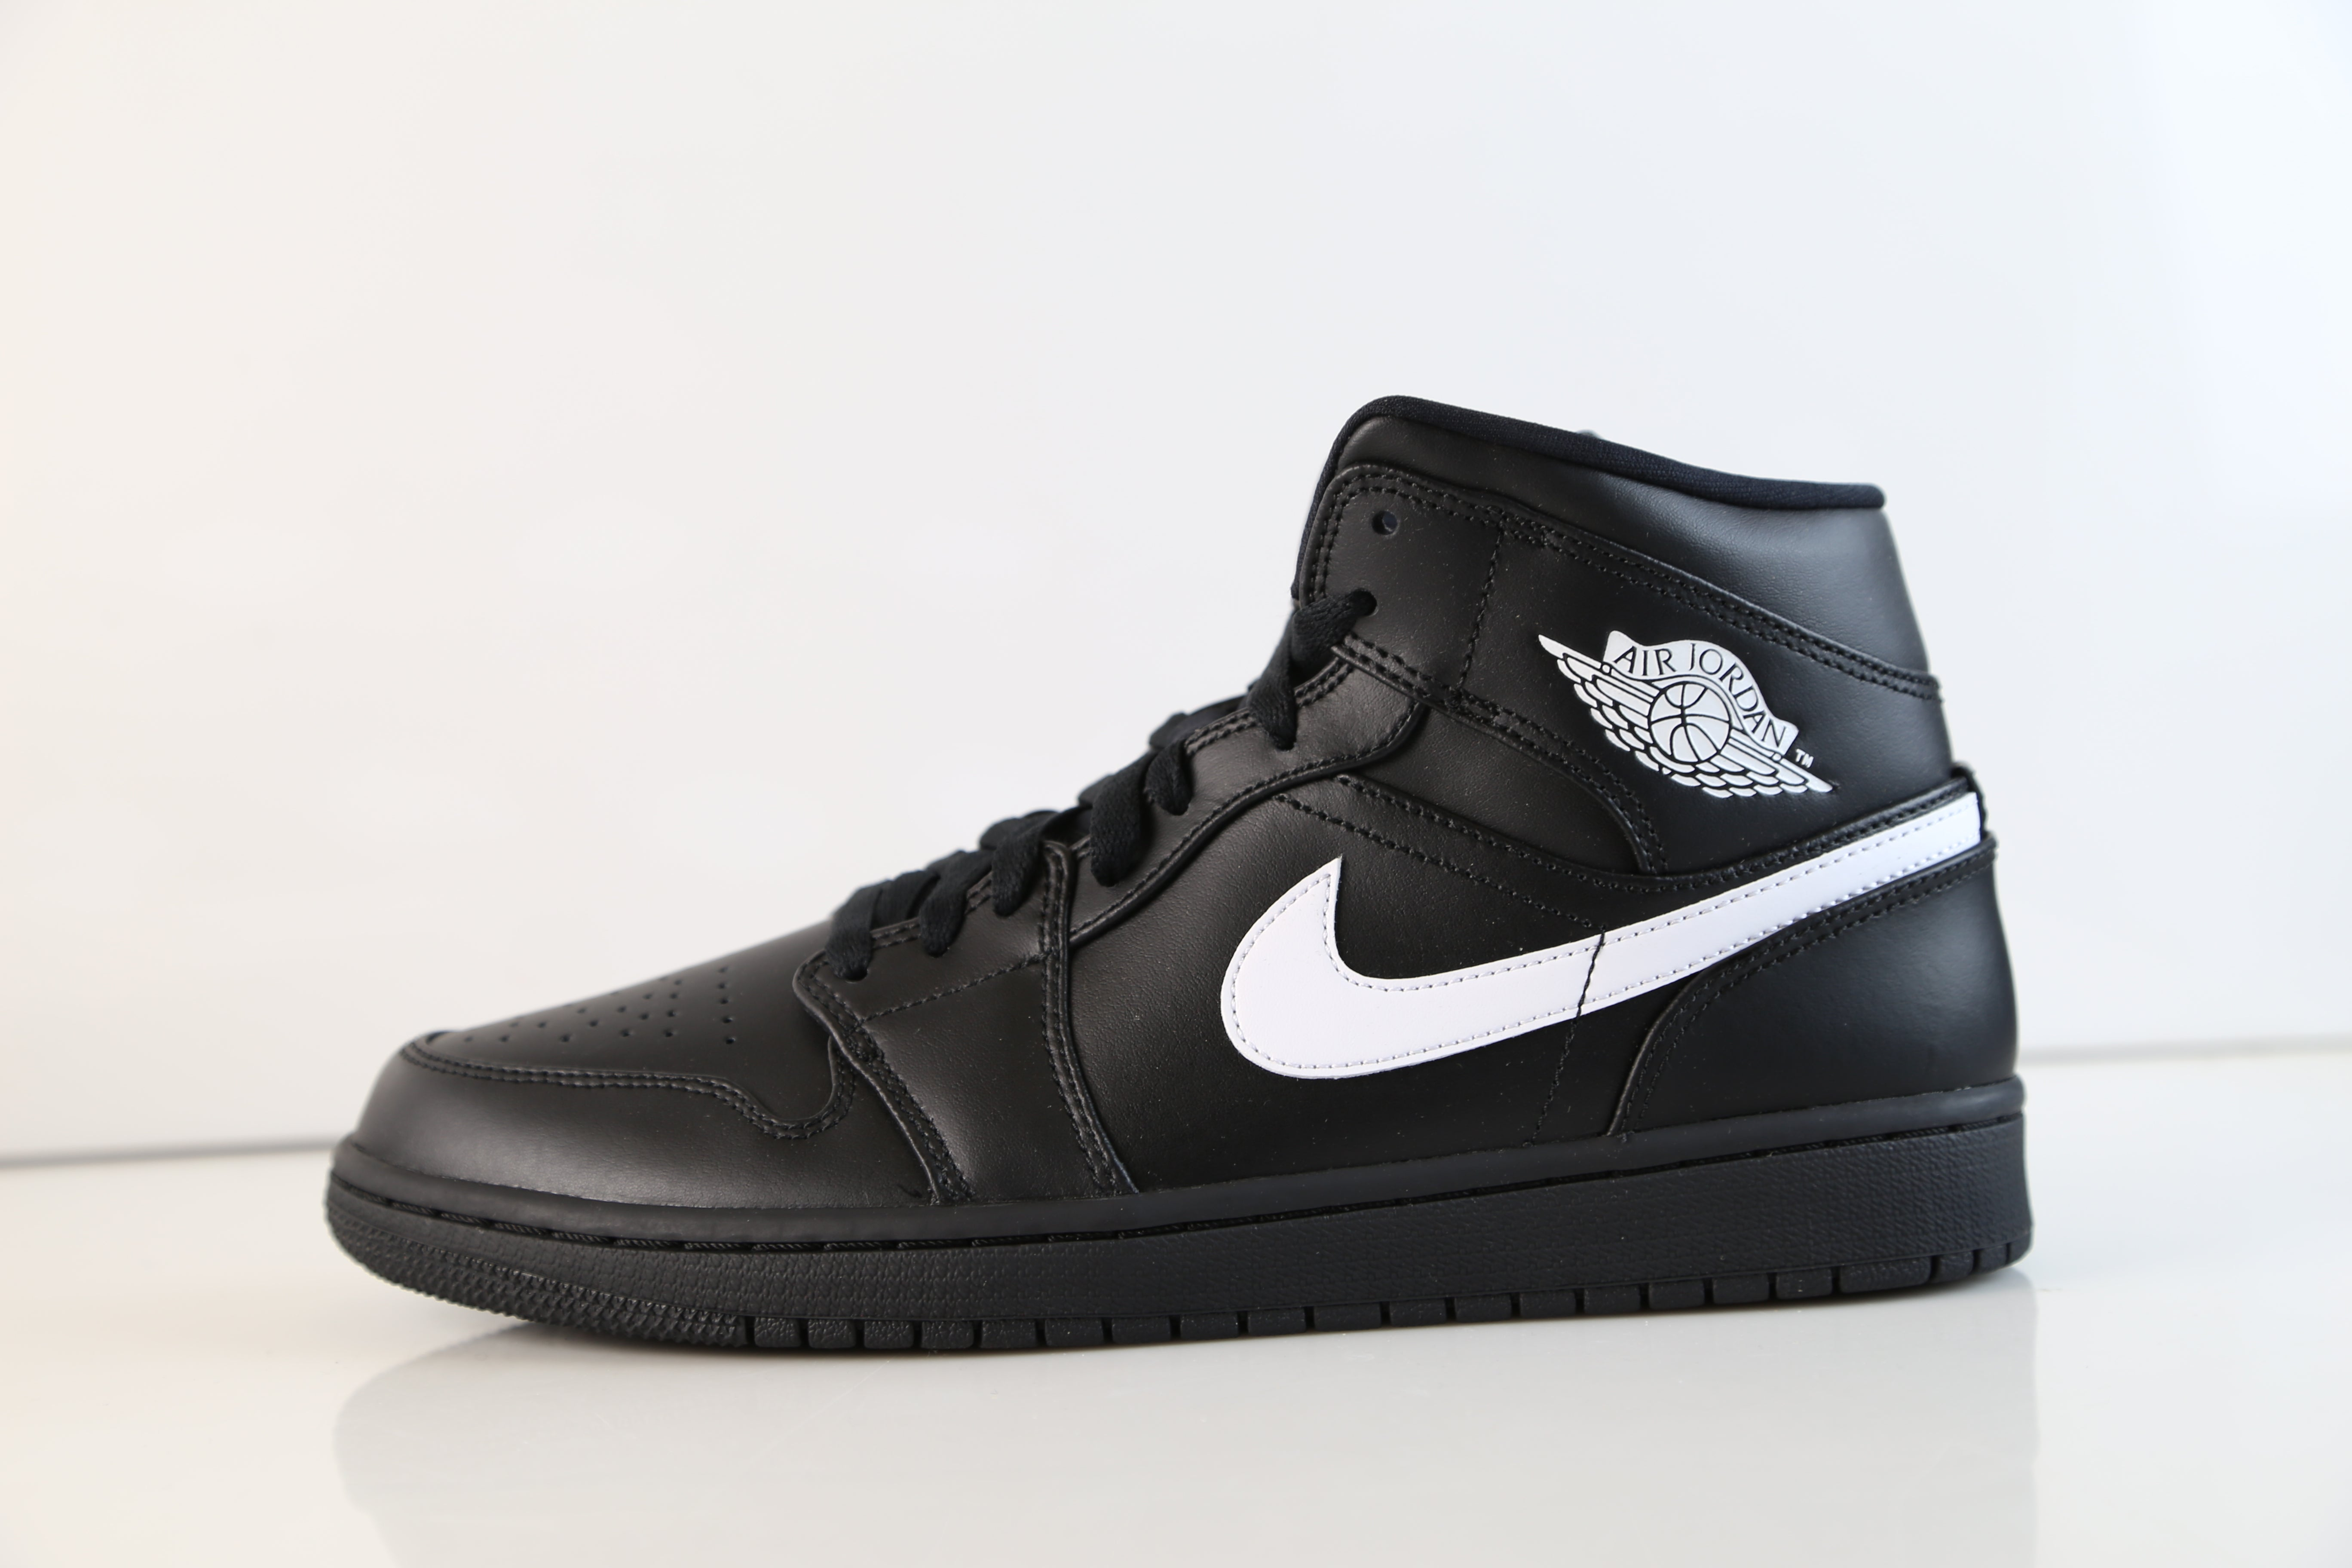 los angeles b32d3 f1850 Nike Air Jordan Retro 1 Mid Black White 554724-049   Zadehkicks